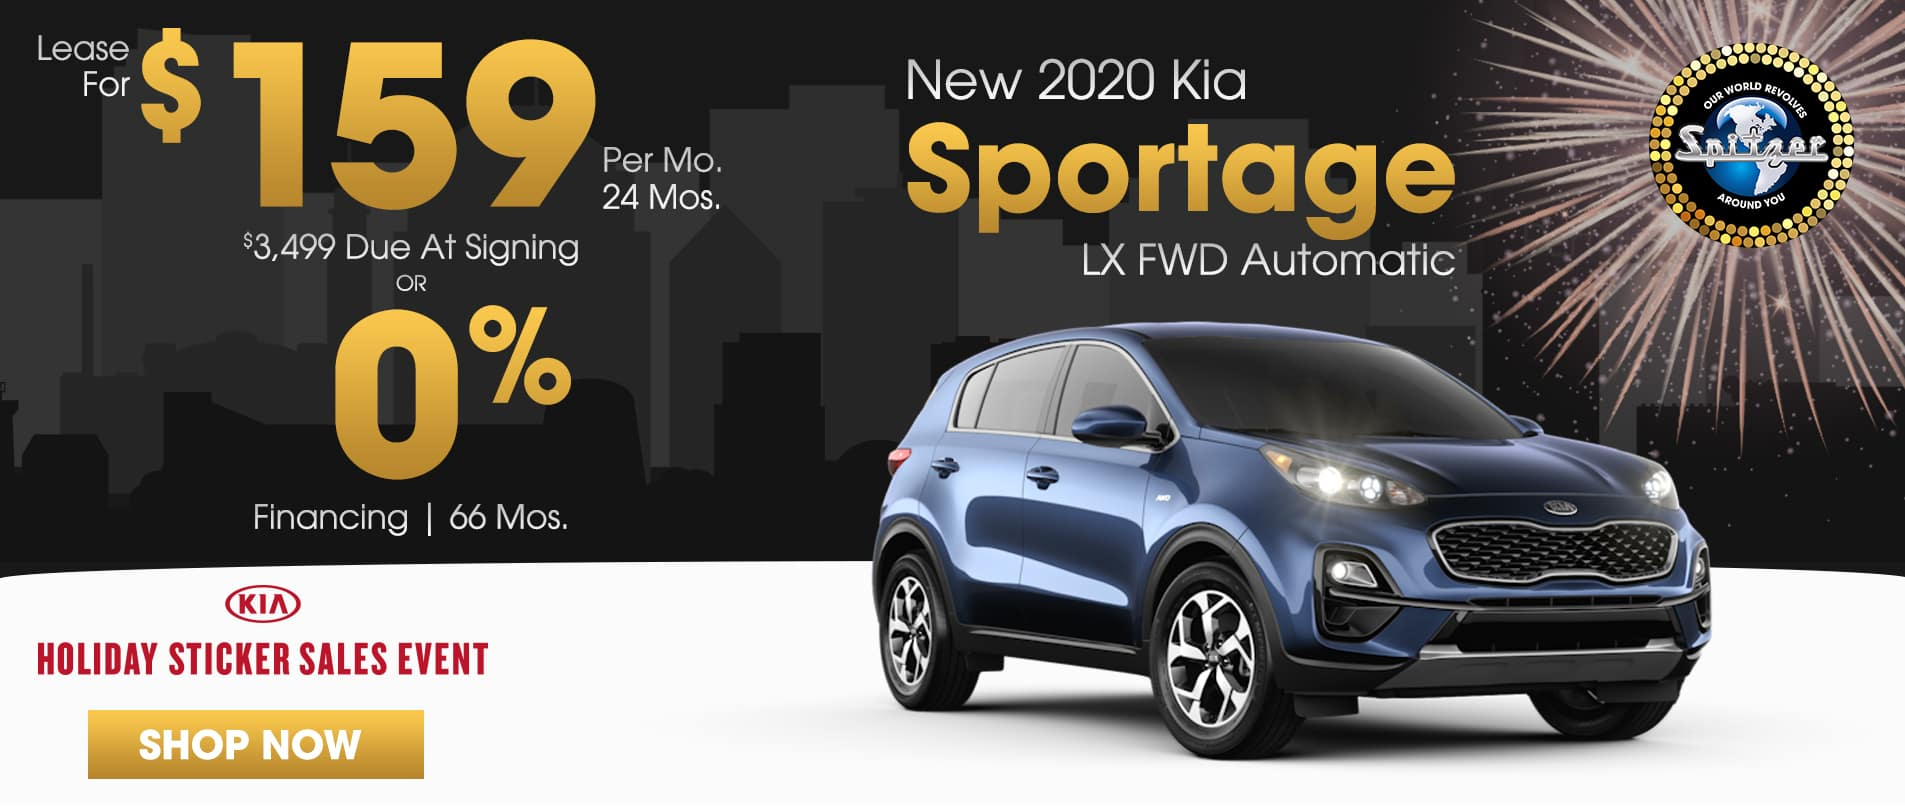 Sportage | Lease for $159 per mo